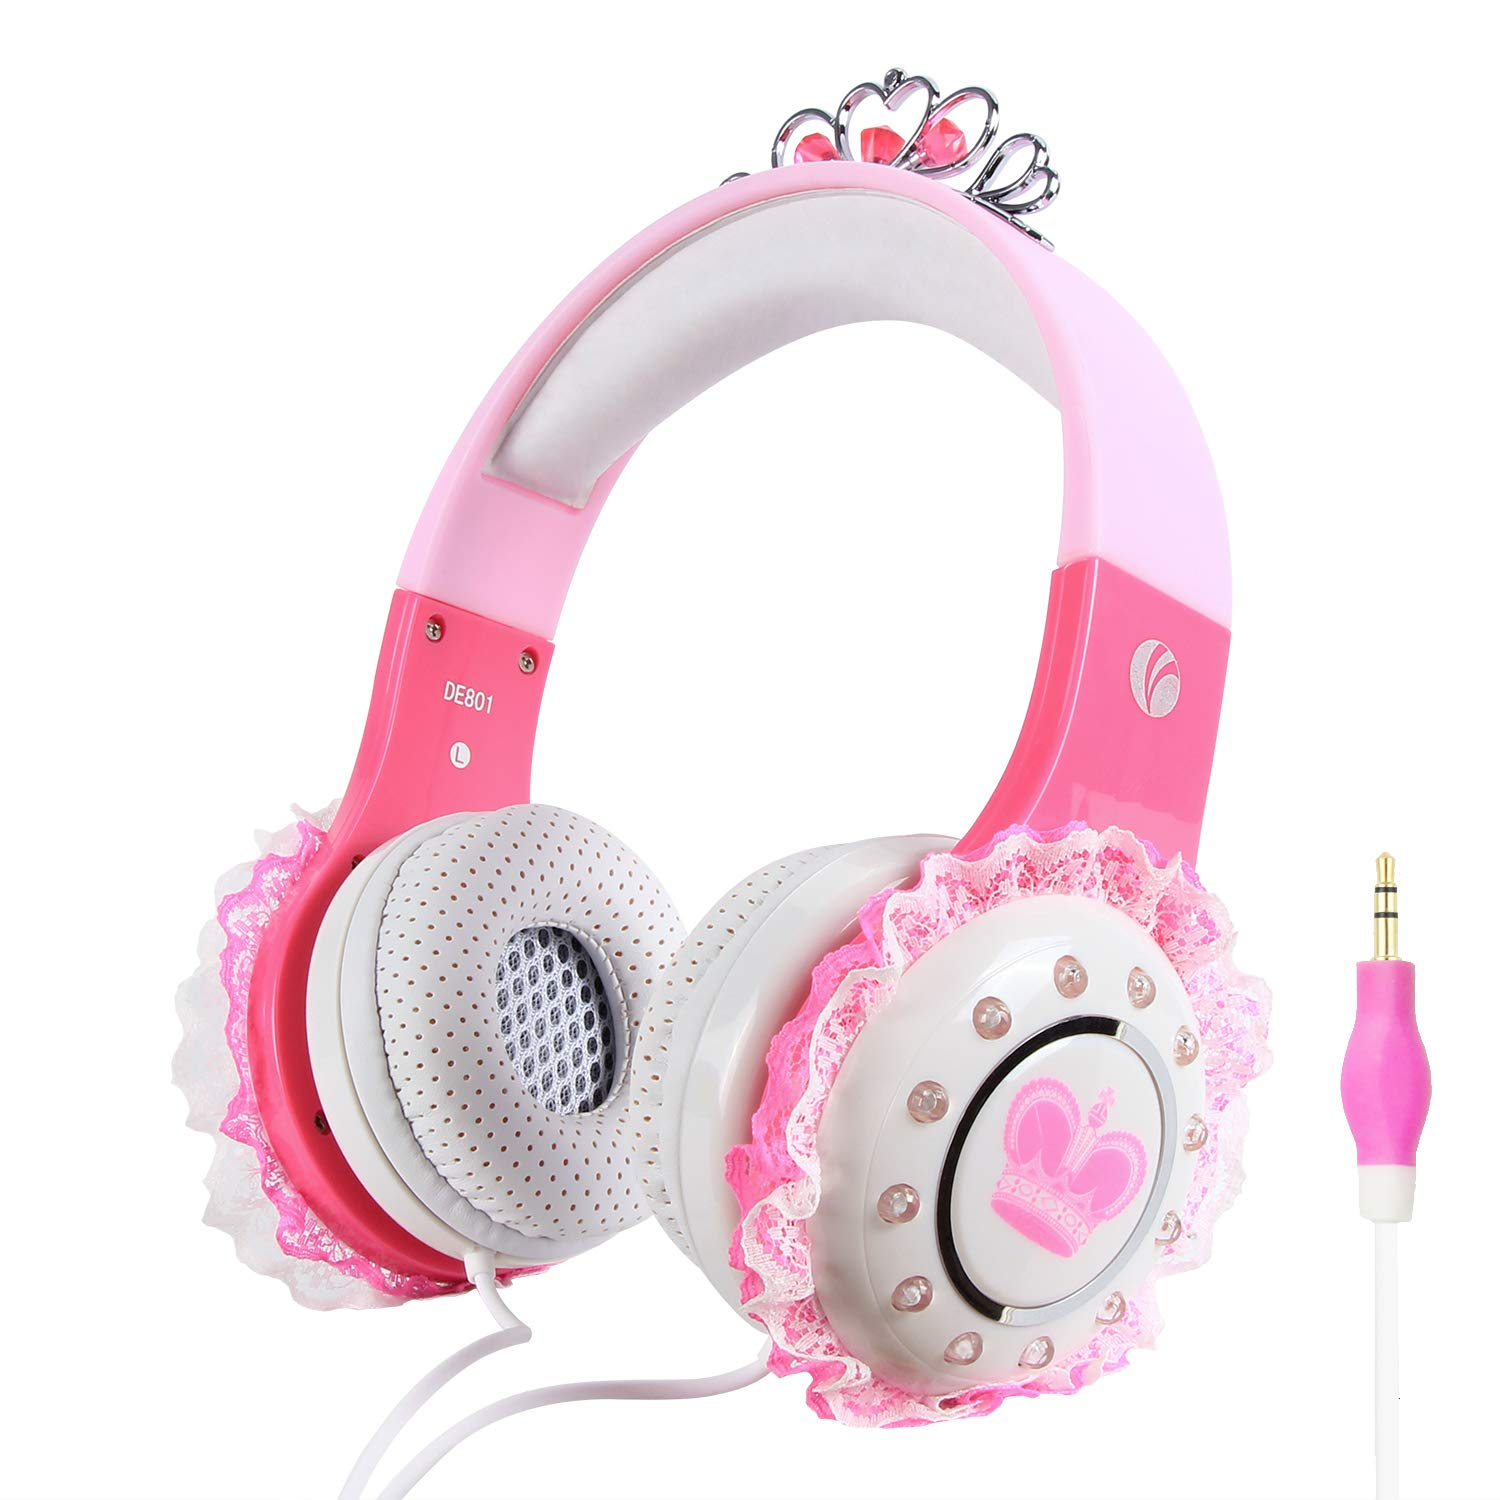 VCOM Kids Headphones, Over Ear Princess Stereo Headsets Children Friendly Earphone with Volume Limiting Feature, 3.5mm Jack Compatible for iPad Kindle Fire Tablet Smartphones Laptop MP3/4 (Pink)